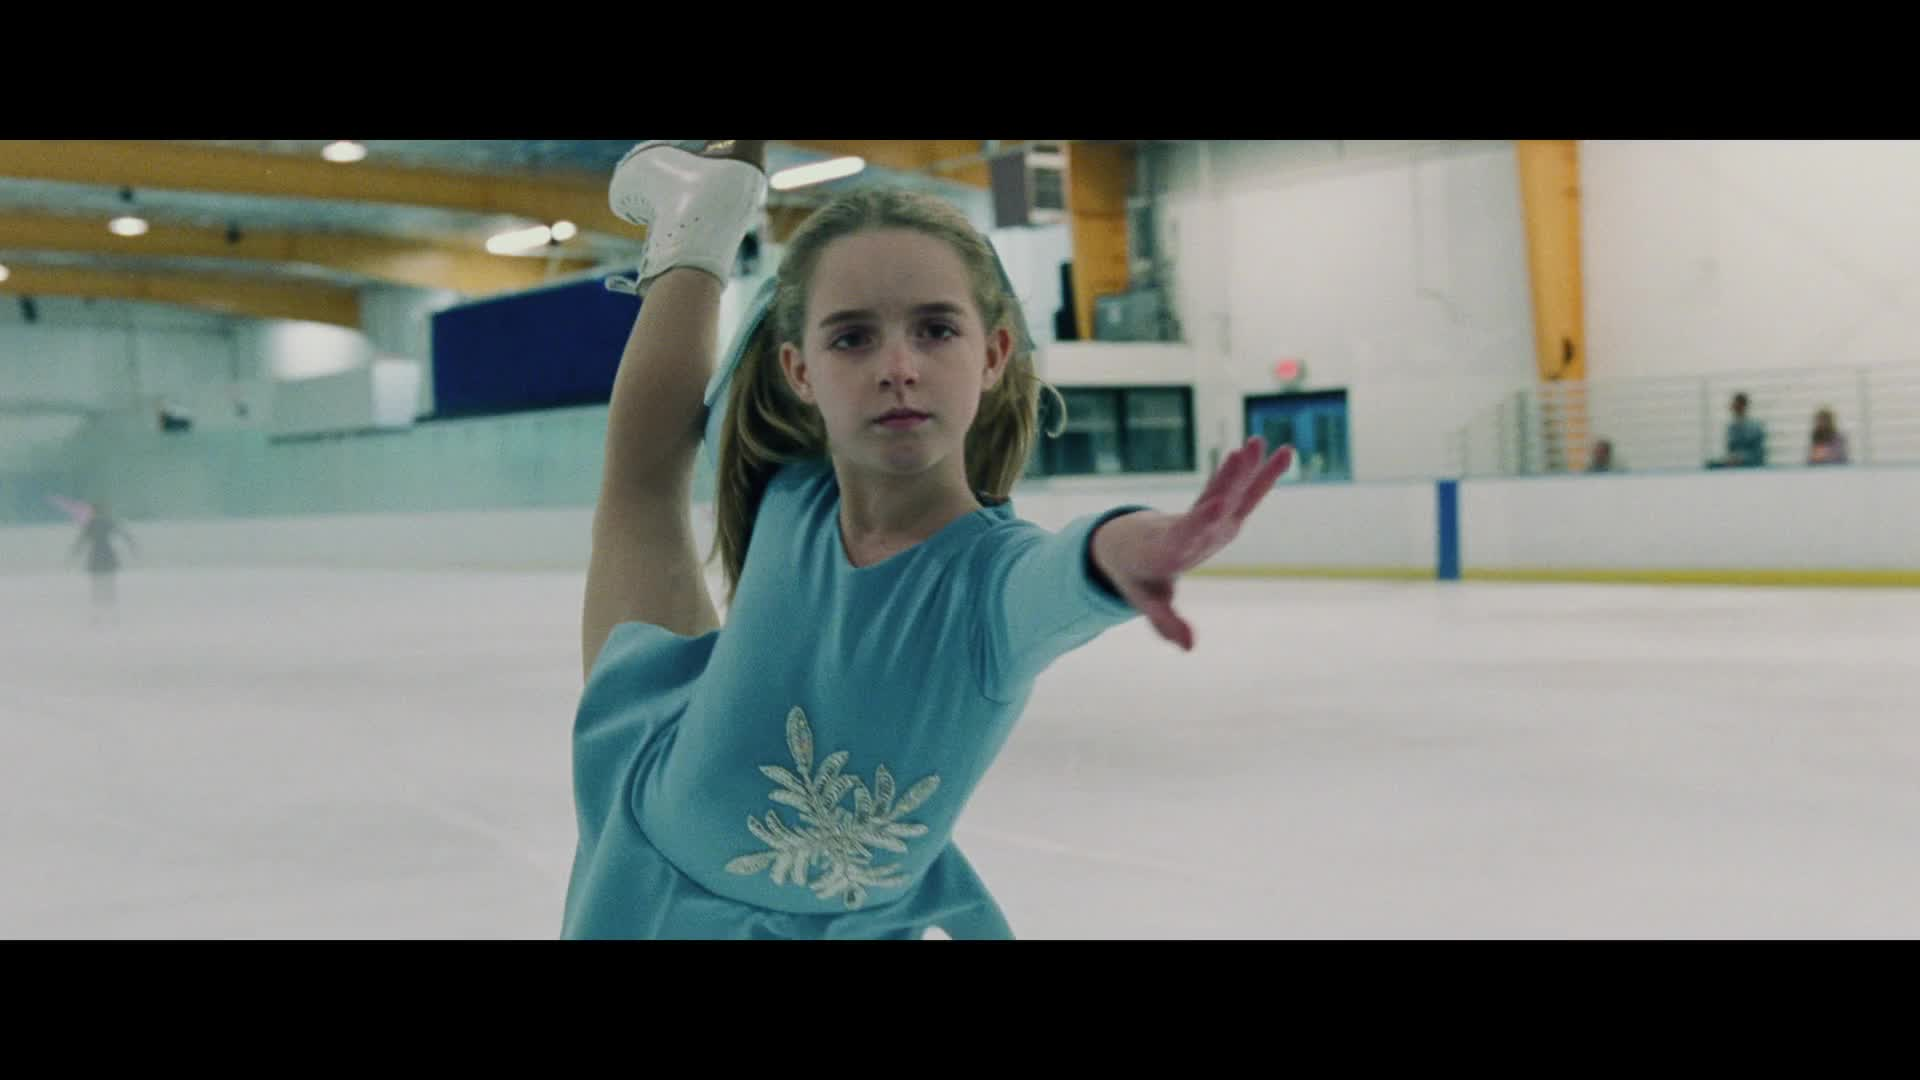 Young Tonya in I, Tonya